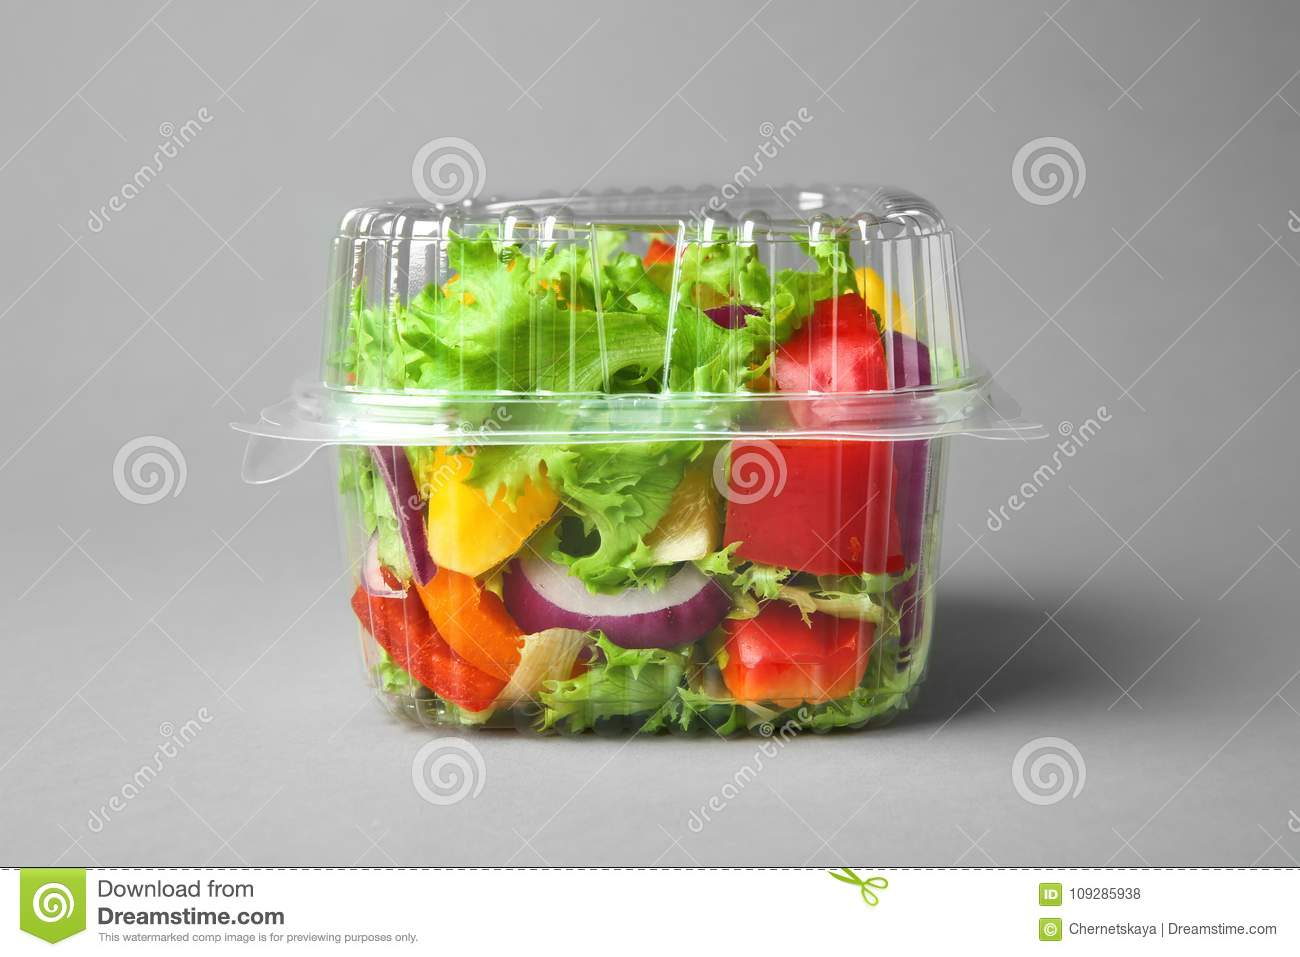 Plastic container with salad